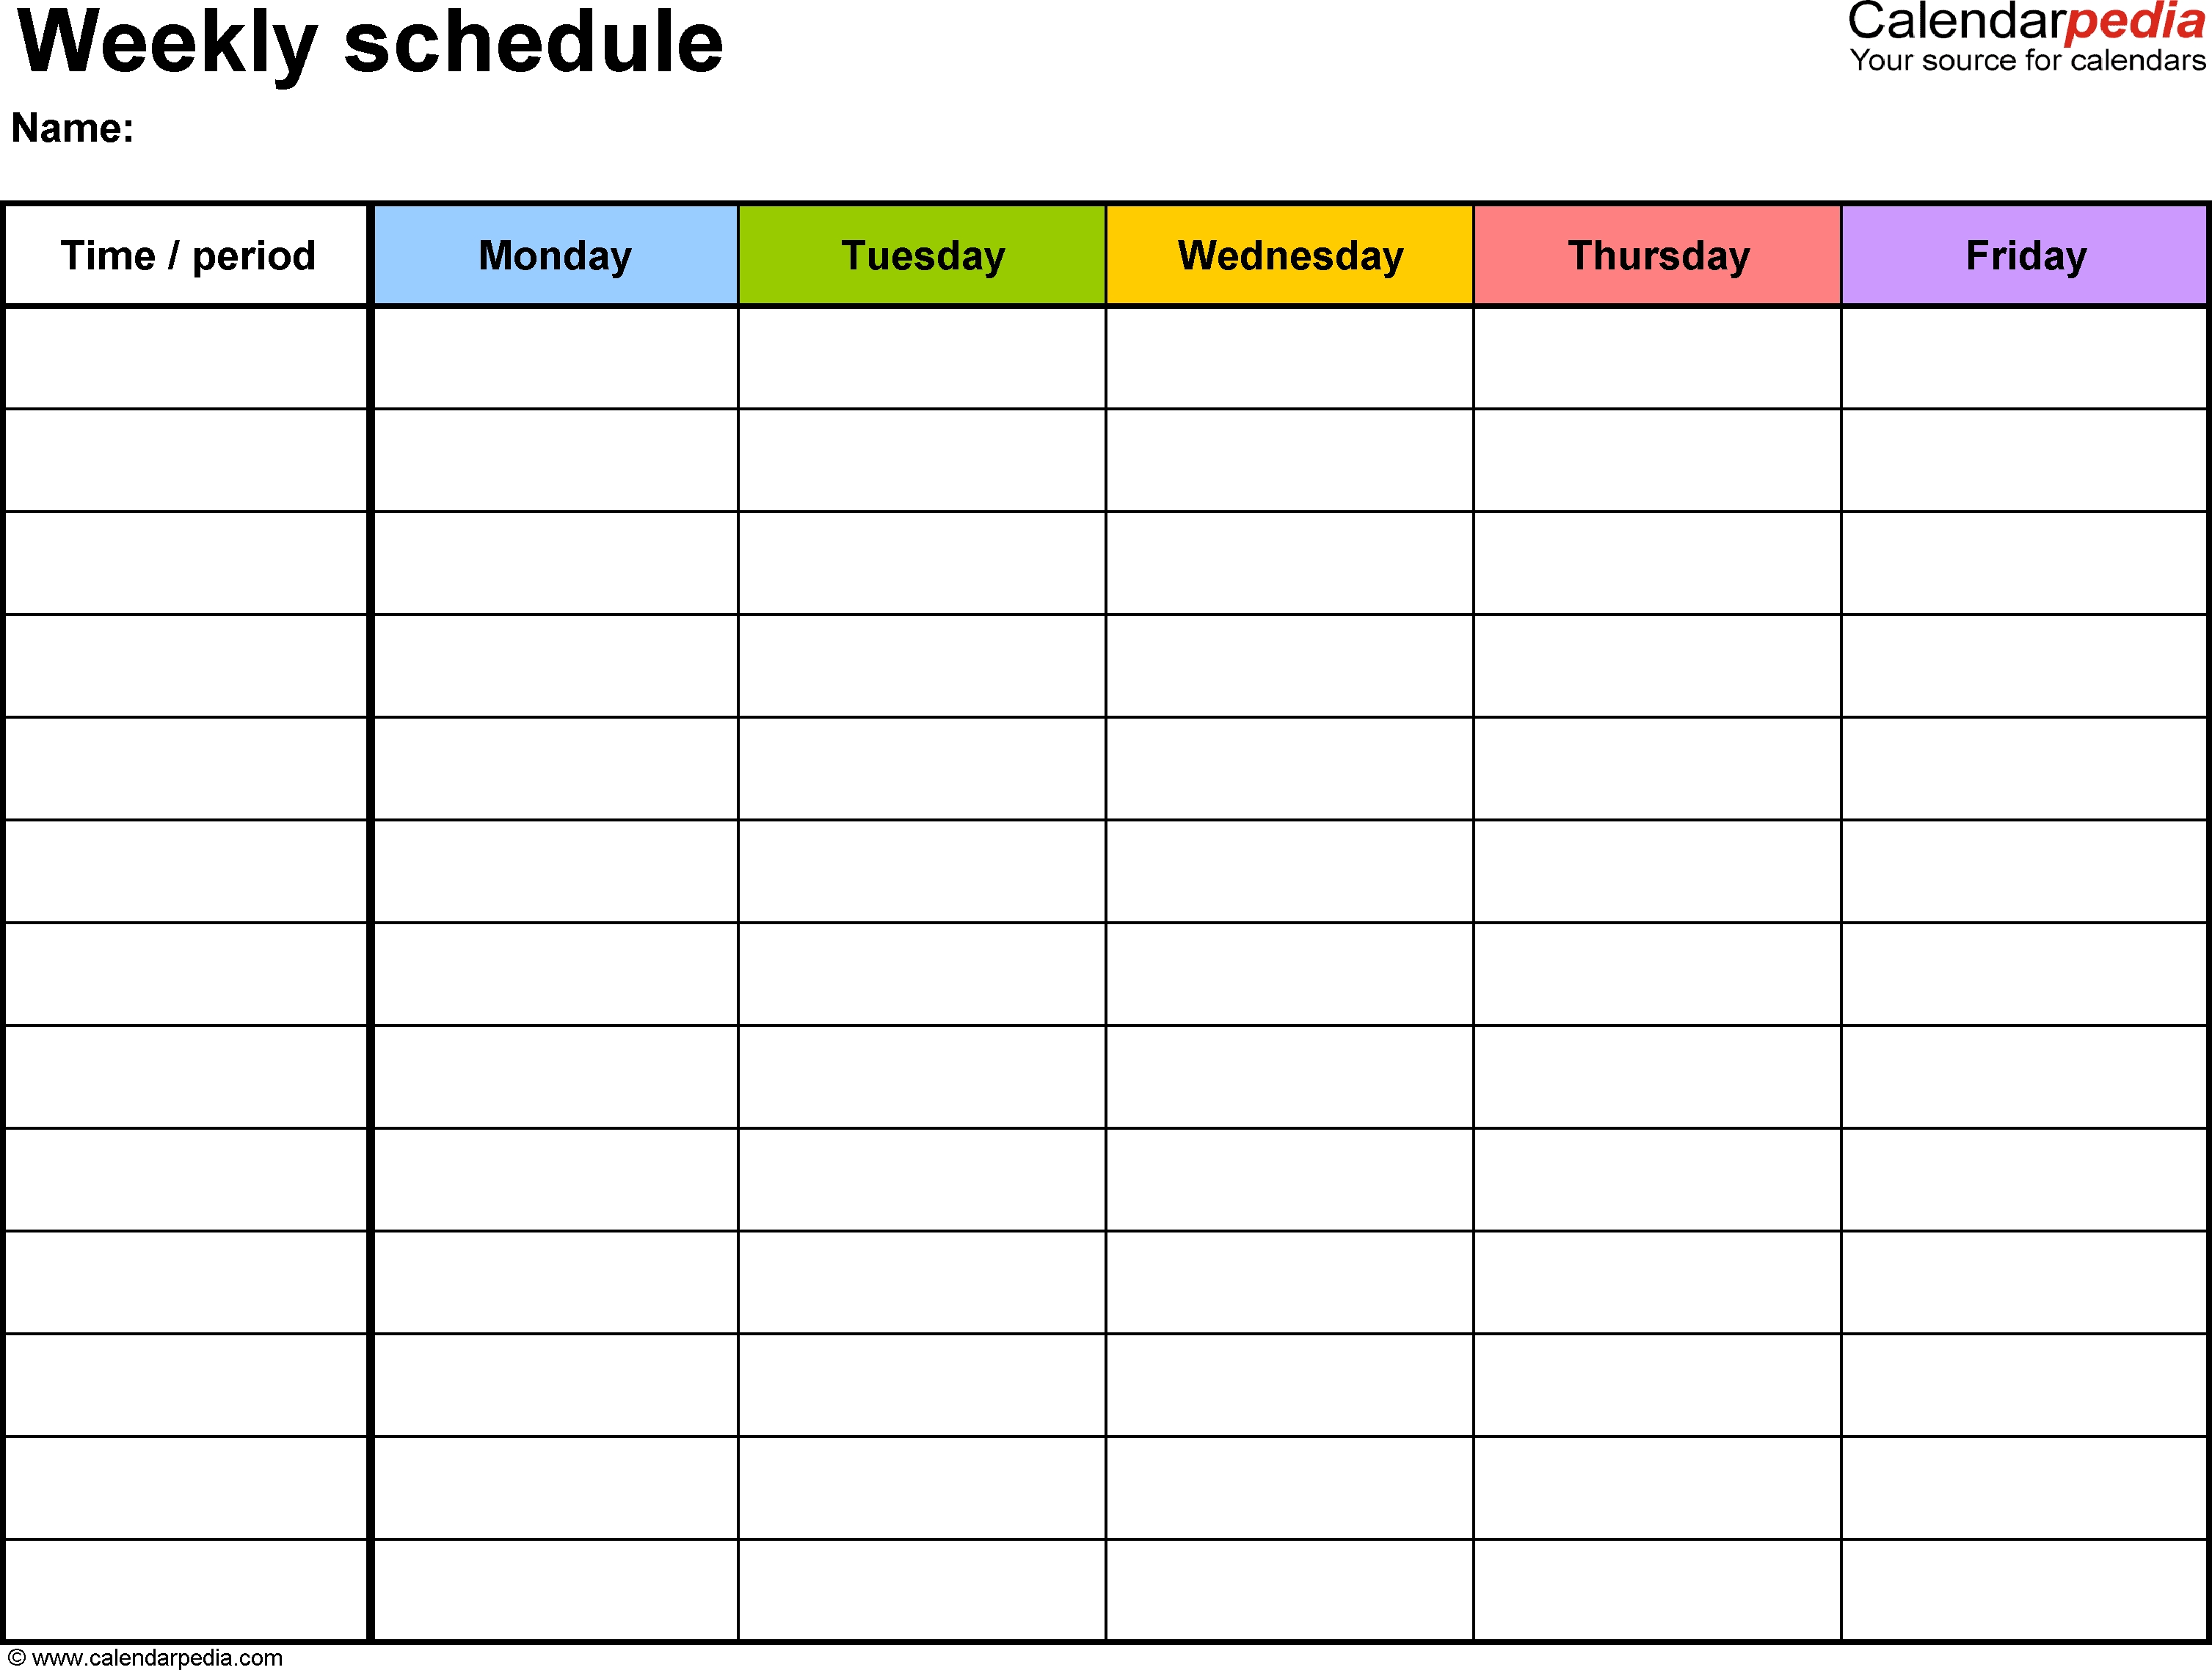 Weekly Schedule Template For Word Version 1: Landscape, 1  Editable Weekly Schedule